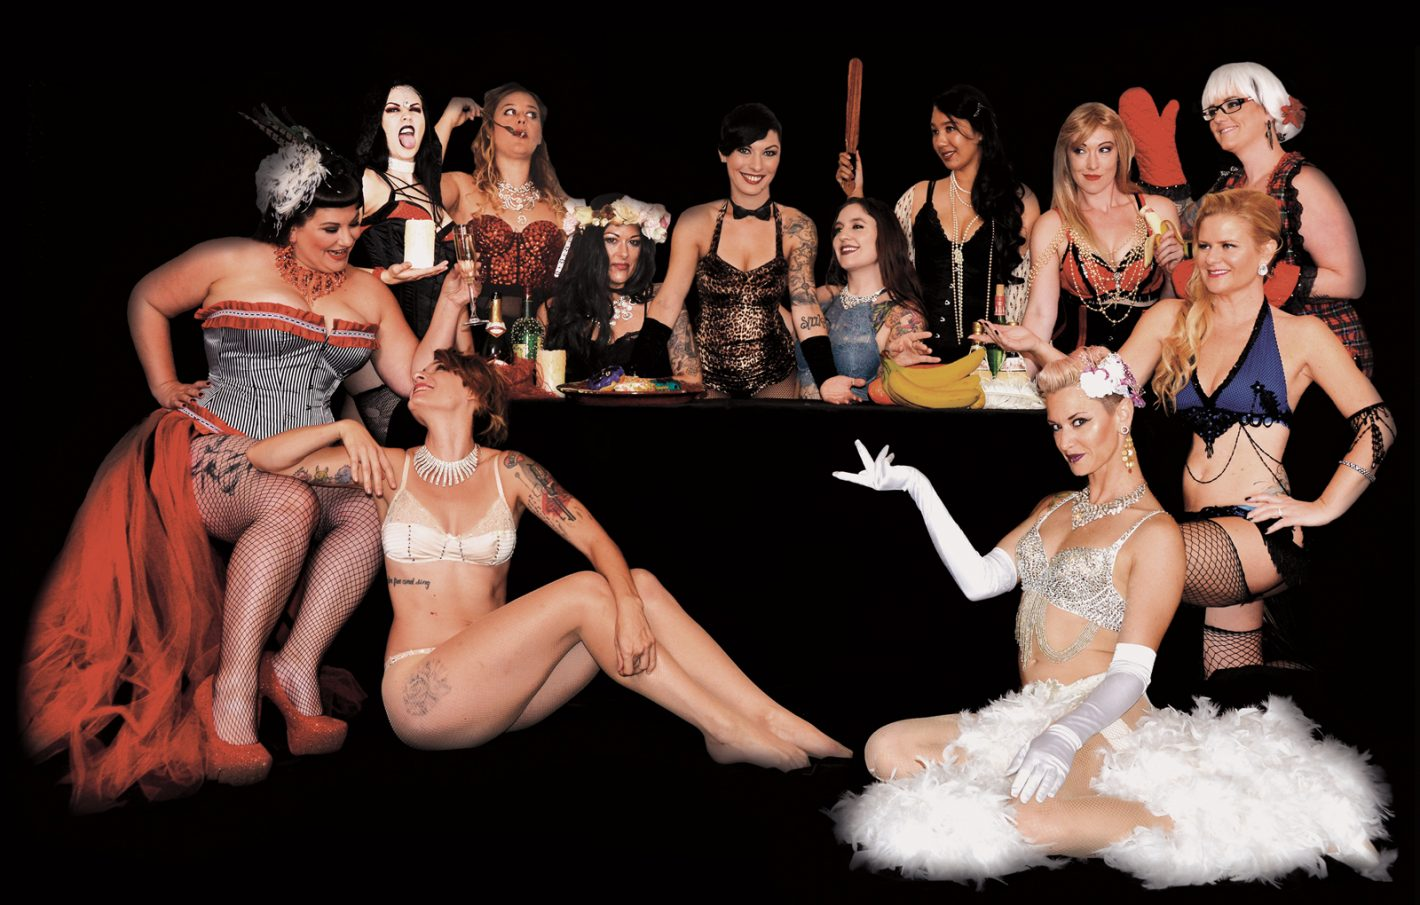 One Last Dance: Sizzling Sirens Burlesque Experience to Perform Final Show at Harlow's Jan. 21, 2017